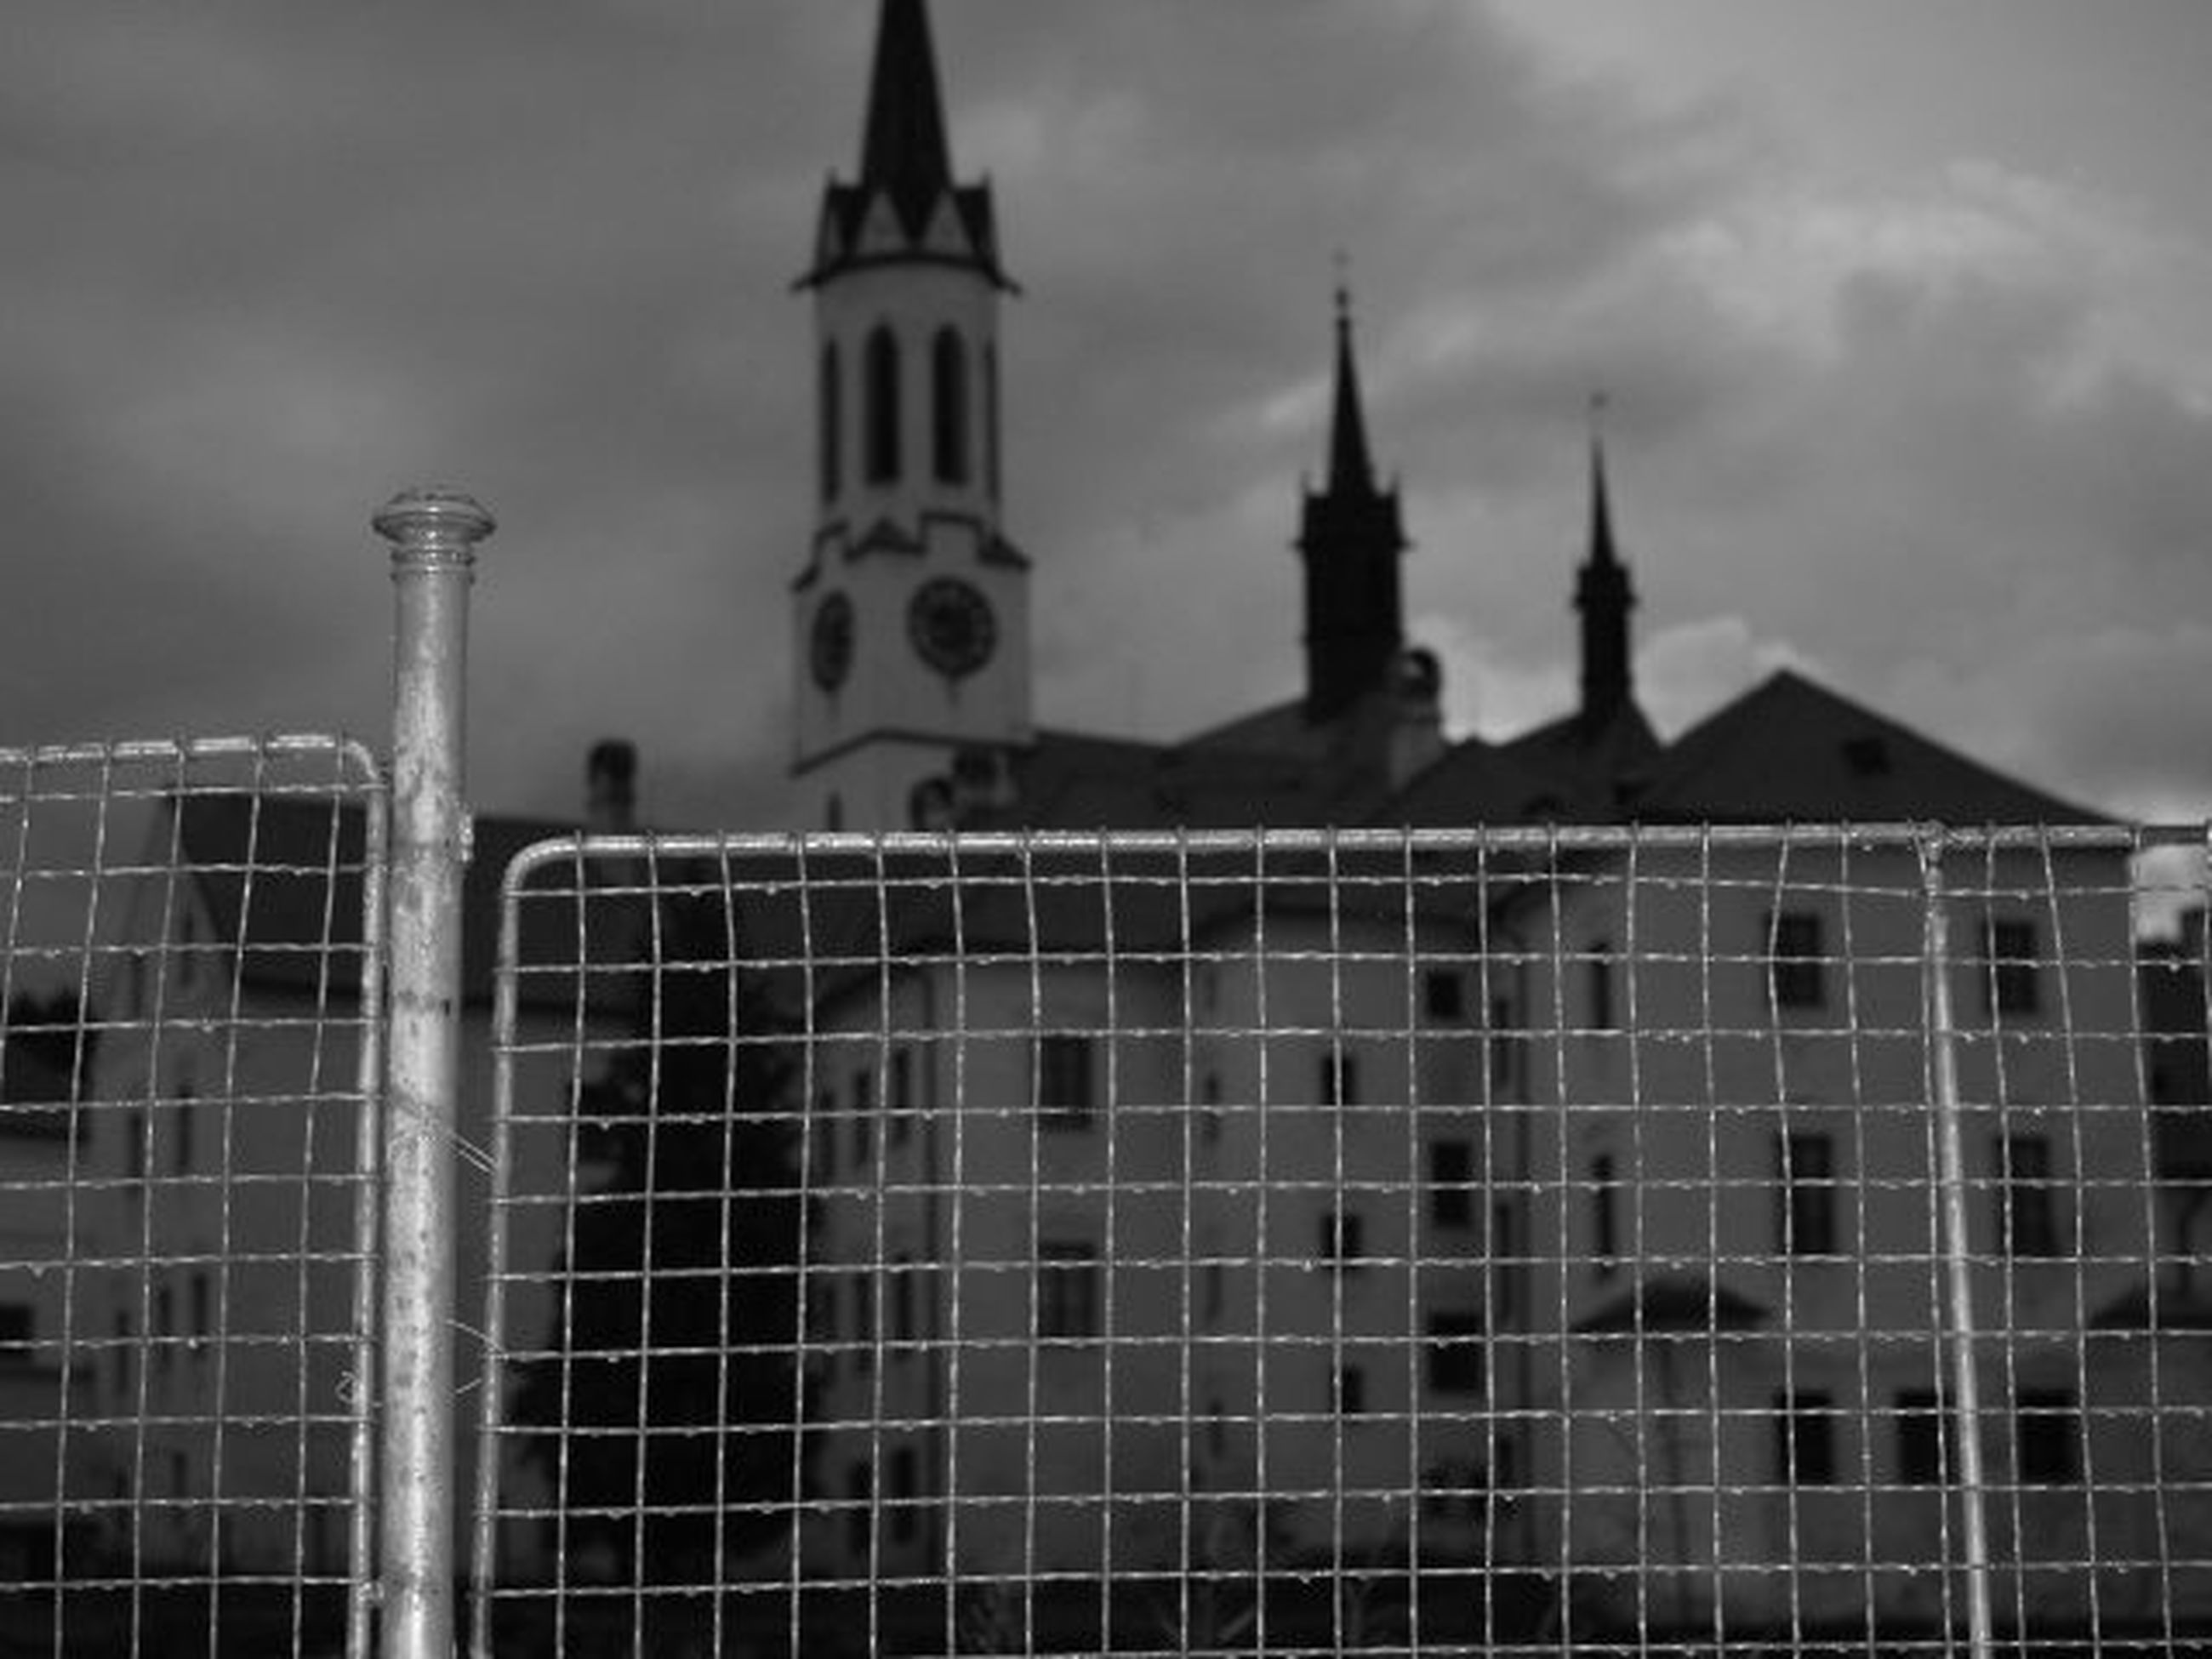 building exterior, architecture, built structure, religion, sky, place of worship, church, low angle view, tower, spirituality, city, cloud - sky, famous place, day, travel destinations, tall - high, outdoors, no people